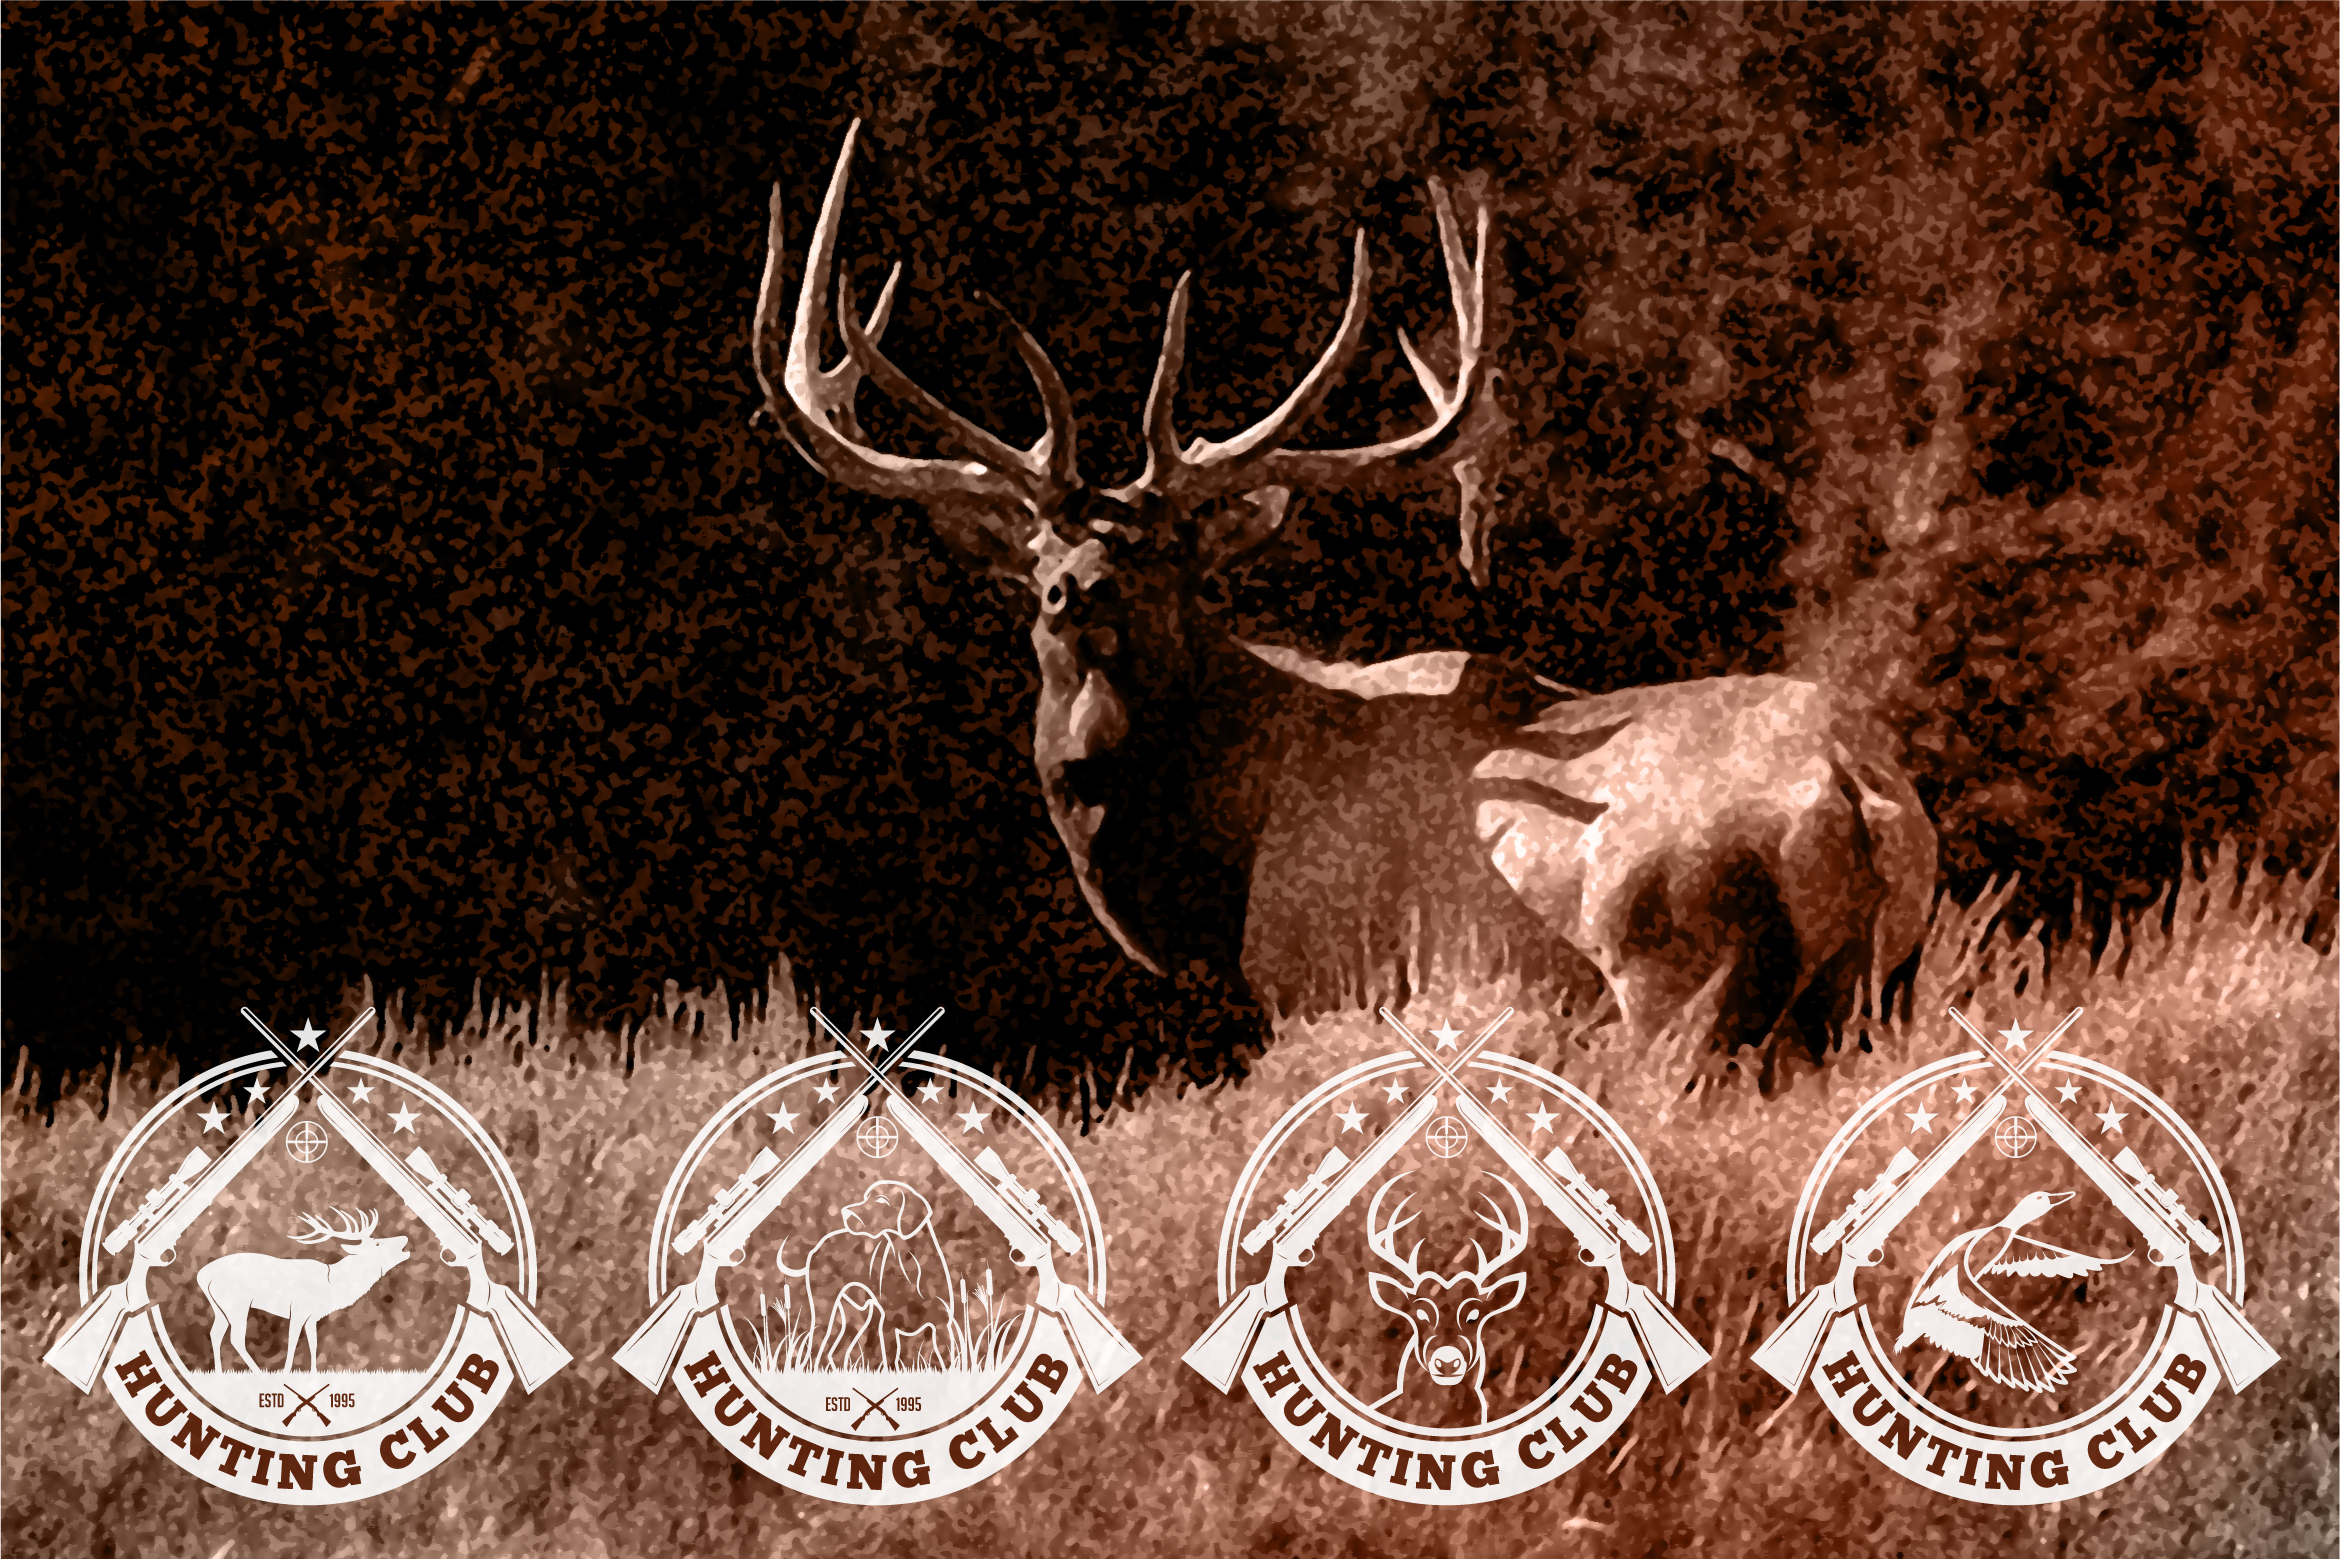 HUNTING CLUB 1 example image 1